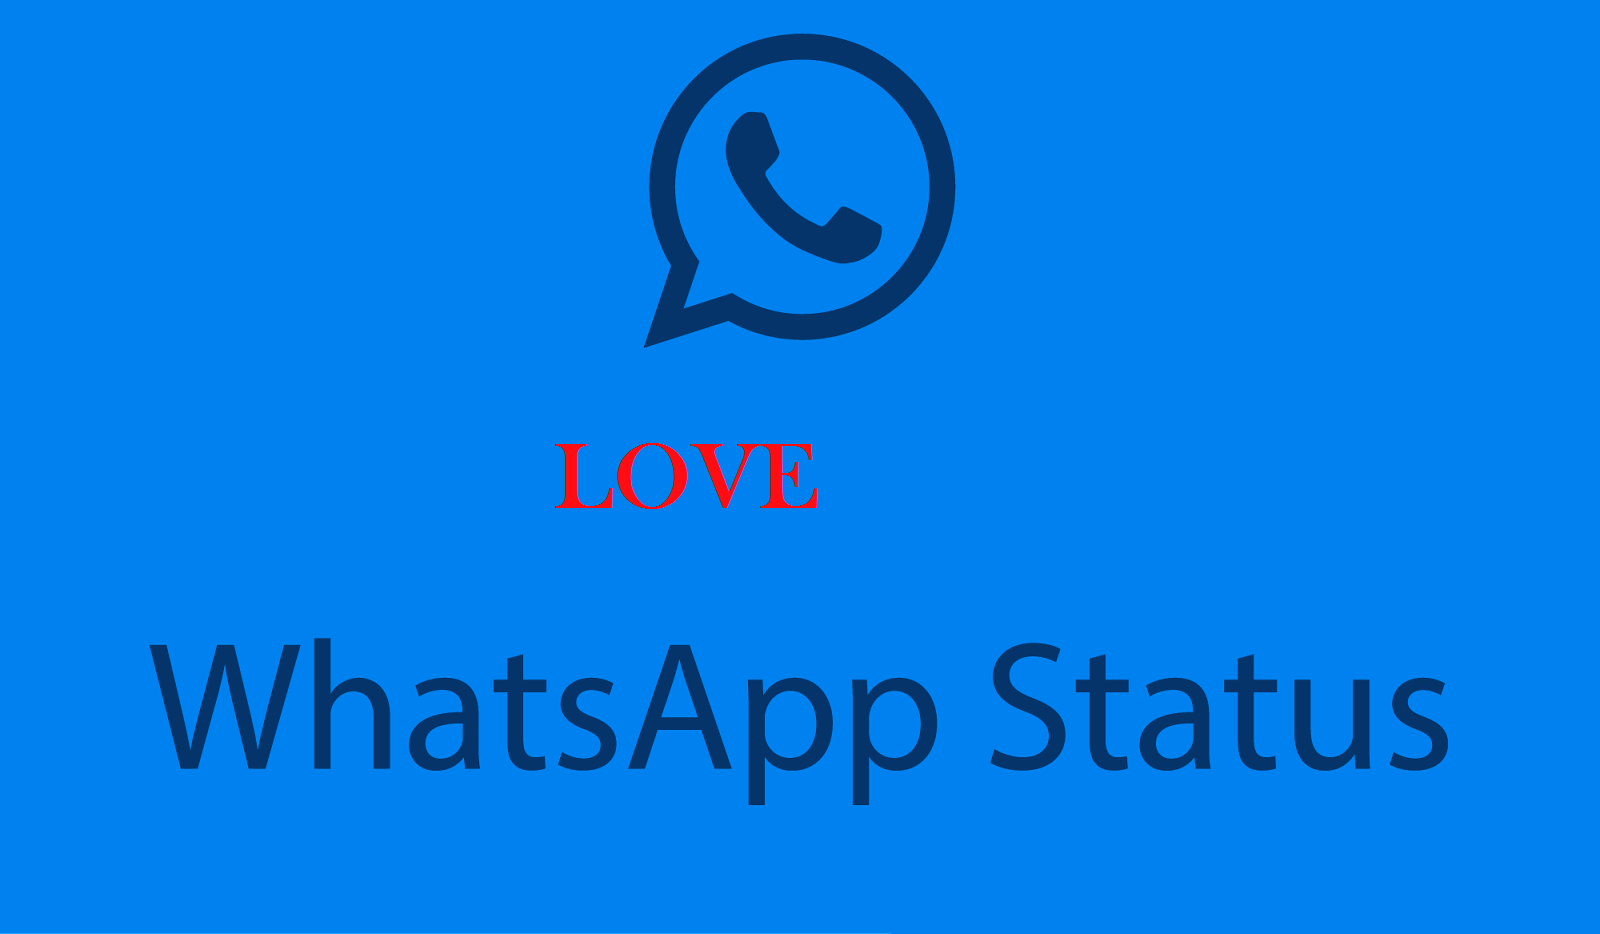 100+ nice status for whatsapp and facebook - statuszilla Share as if you do